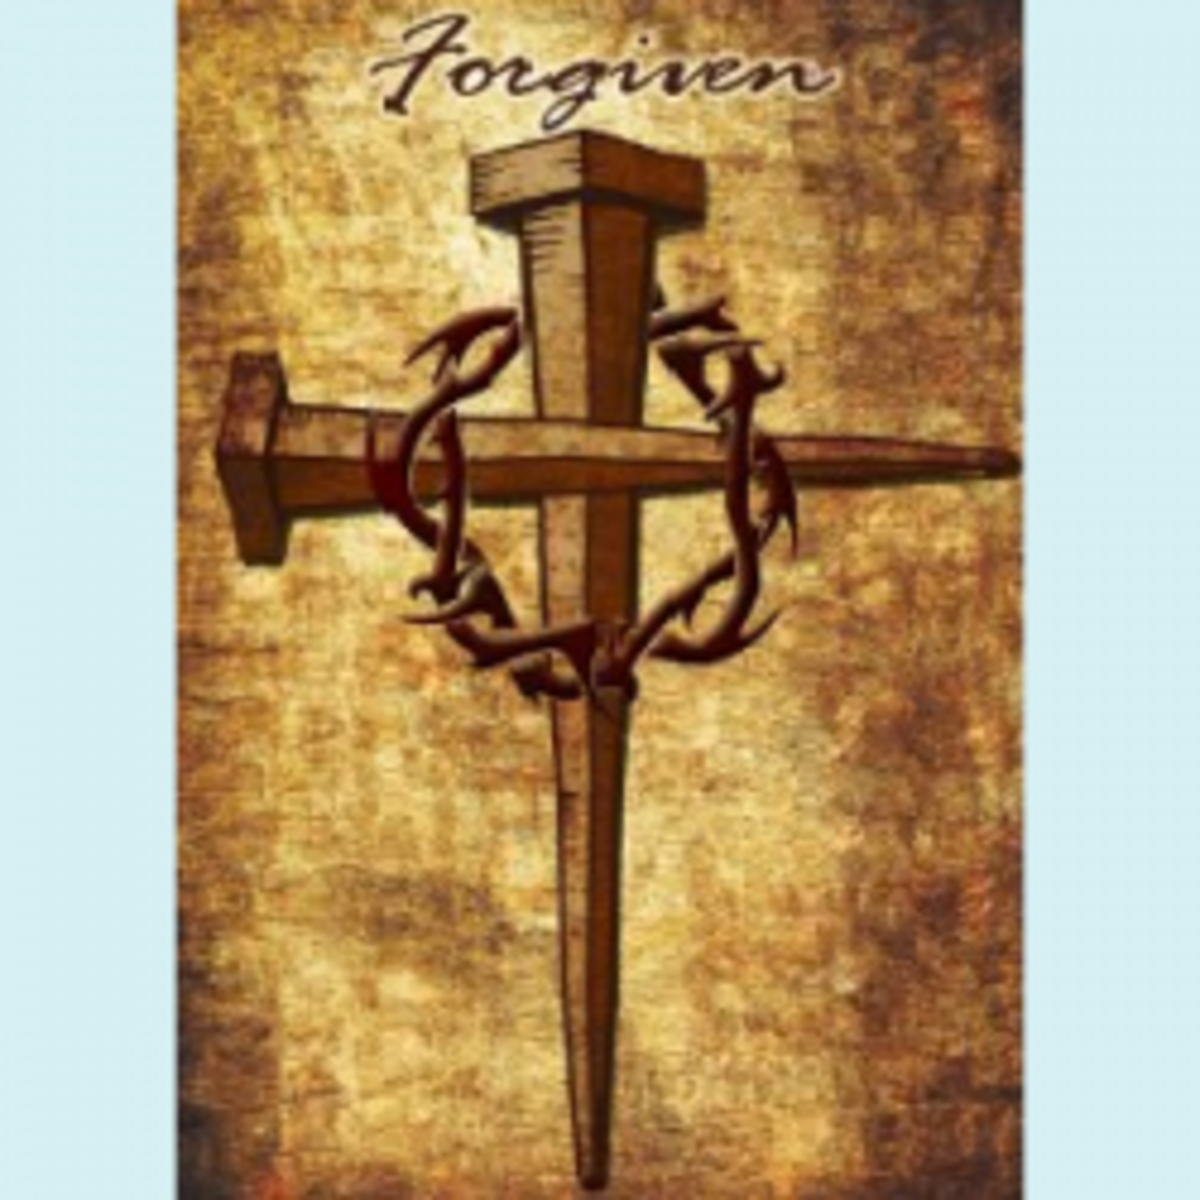 """The glowing brown-and-gold """"Forgiven"""" house and garden flag design features a cross of nails and a crown of thorns, strong symbols of Christ's crucifixion."""